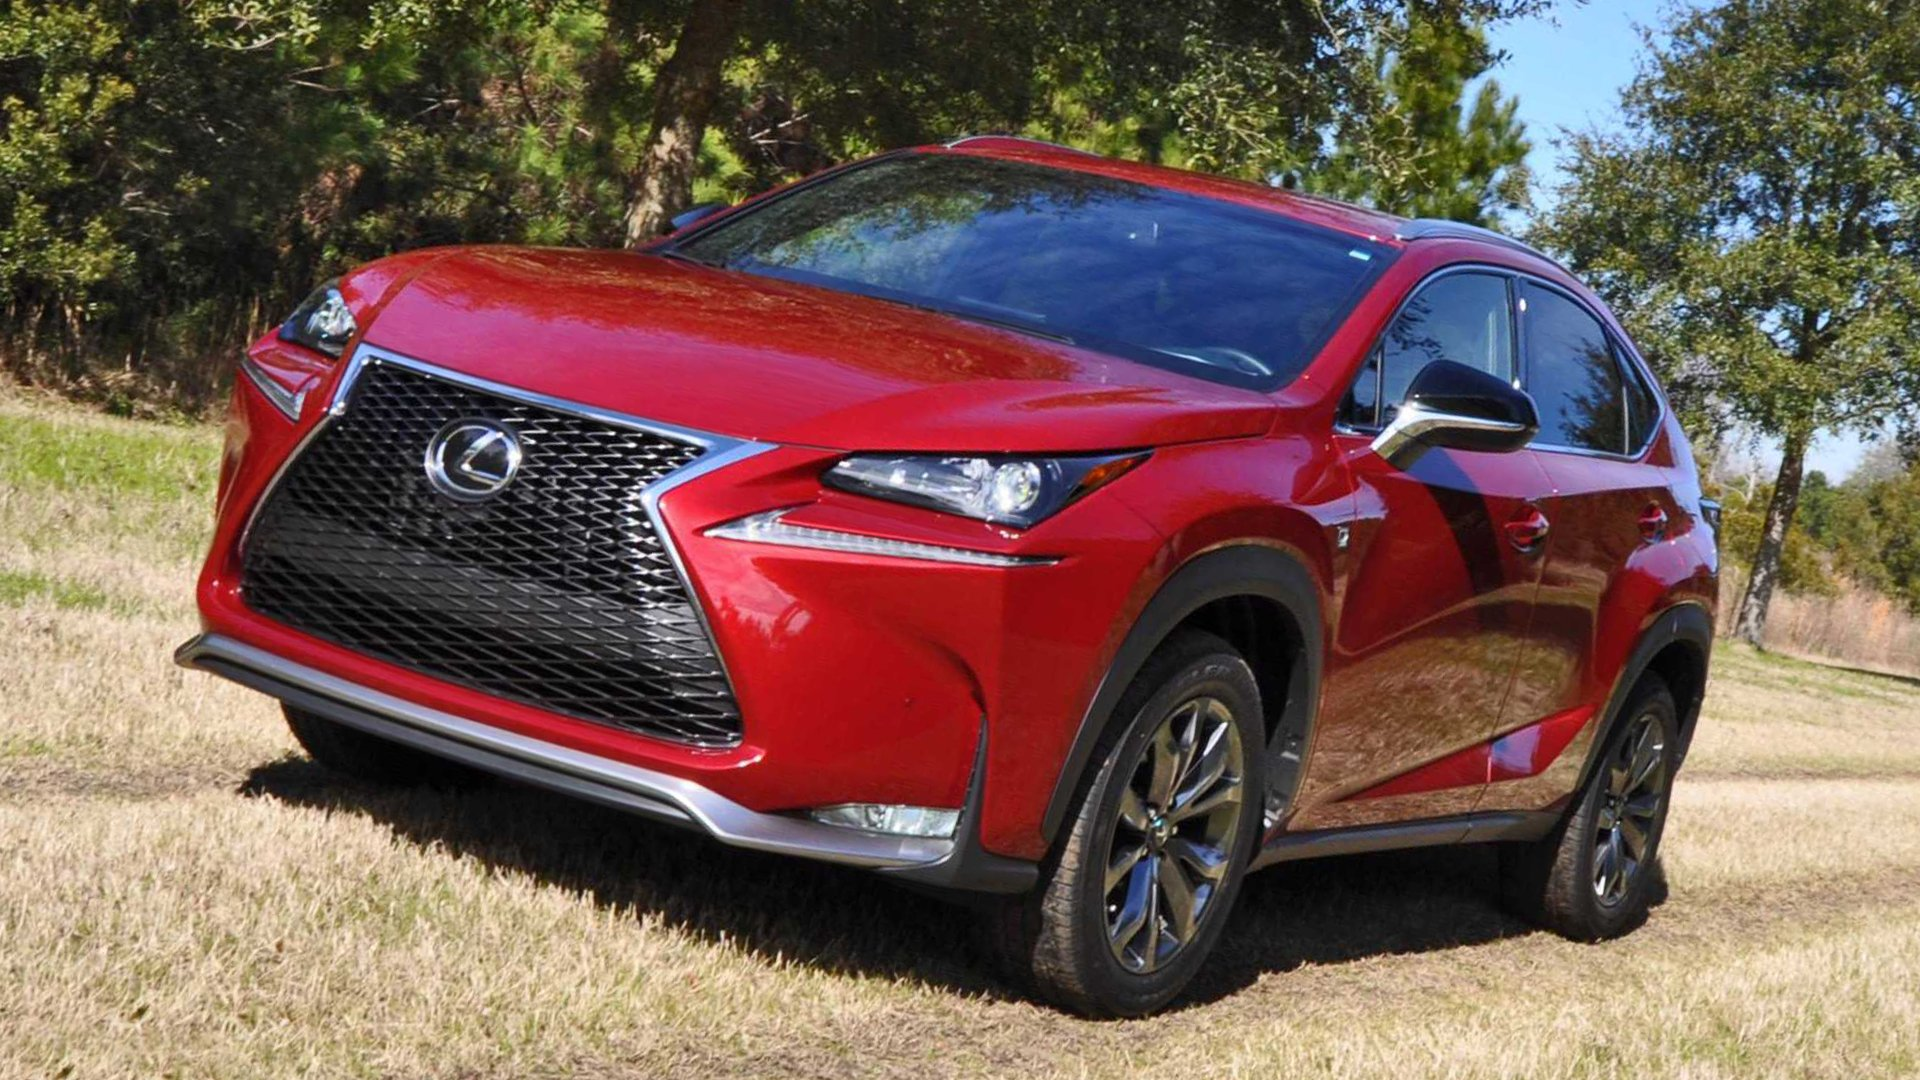 Lexus NX 200 2018 Front View HD